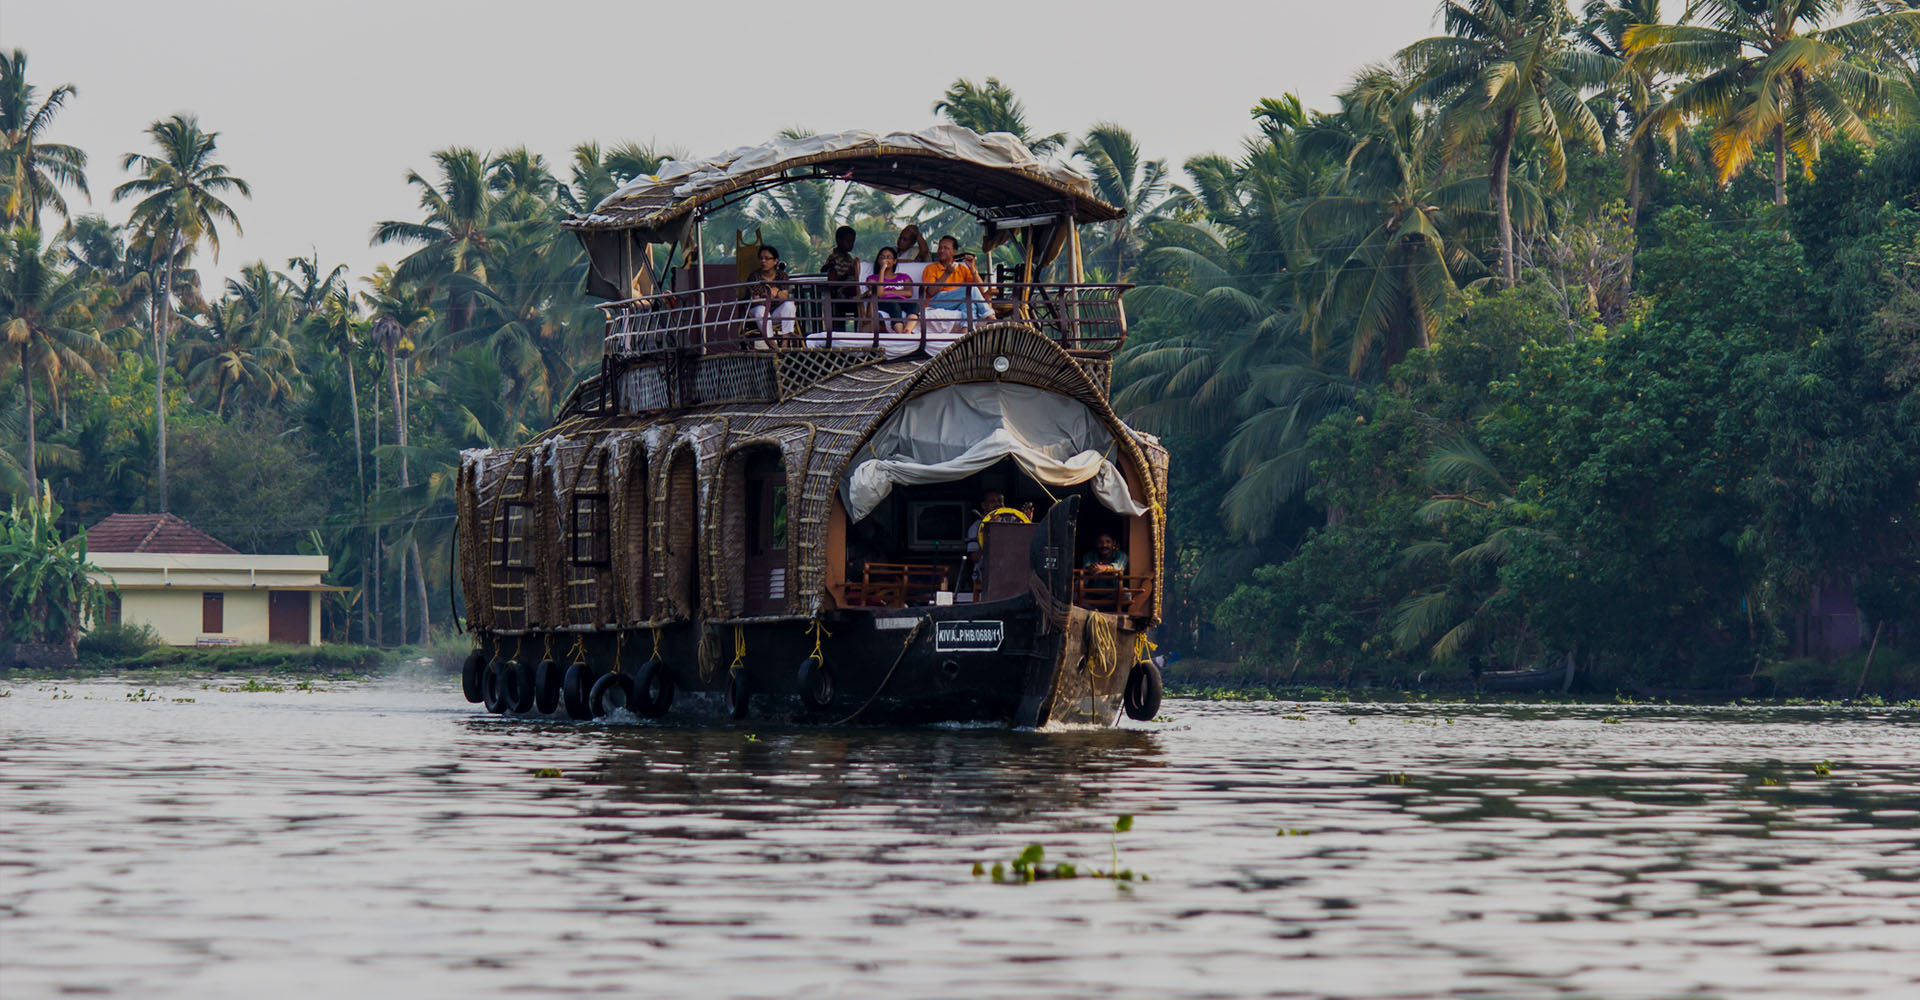 Alleppey – Beaches, Backwaters and Houseboats